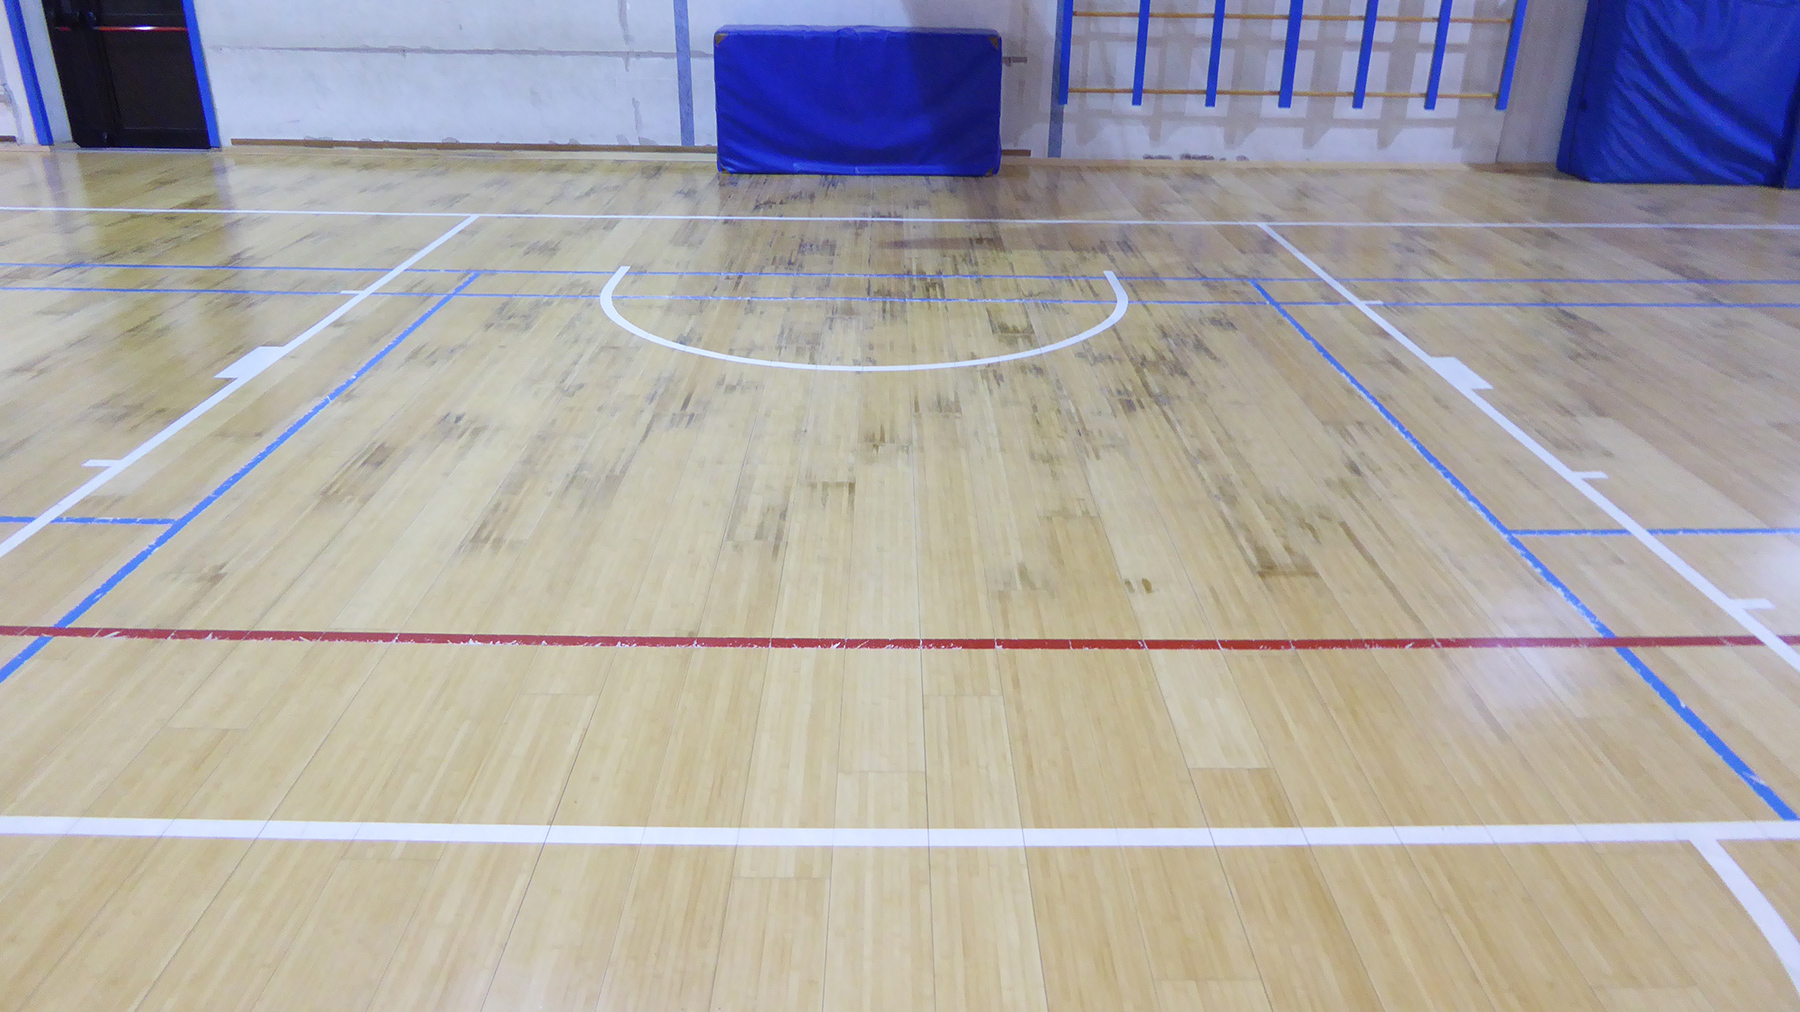 The parquet is wet but intact